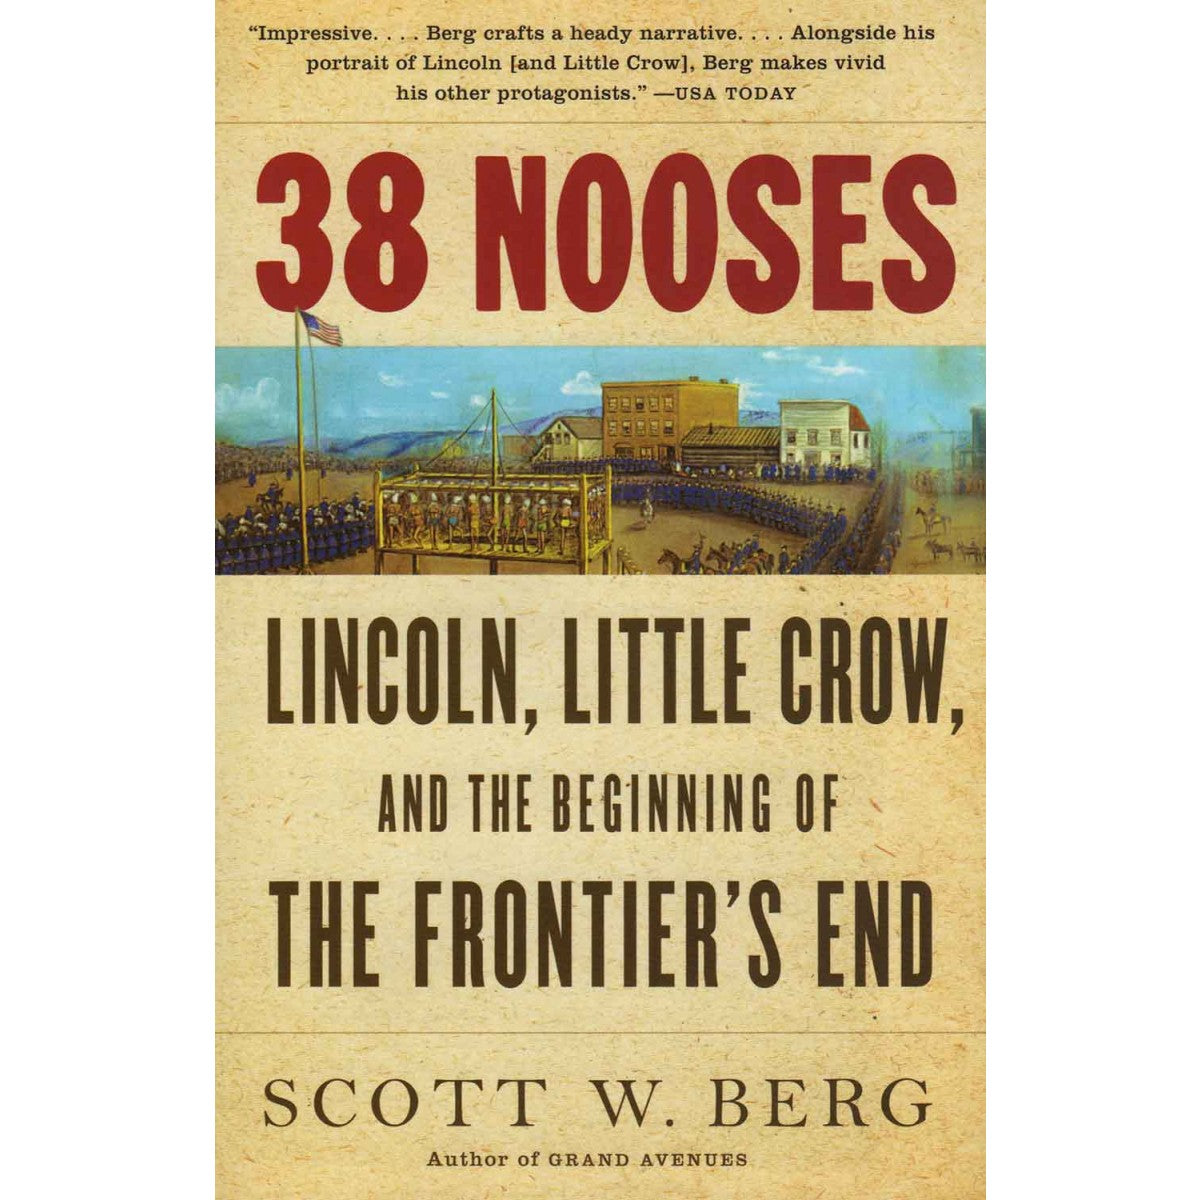 38 Nooses: Lincoln, Little Crow, and the Beginning of The Frontier